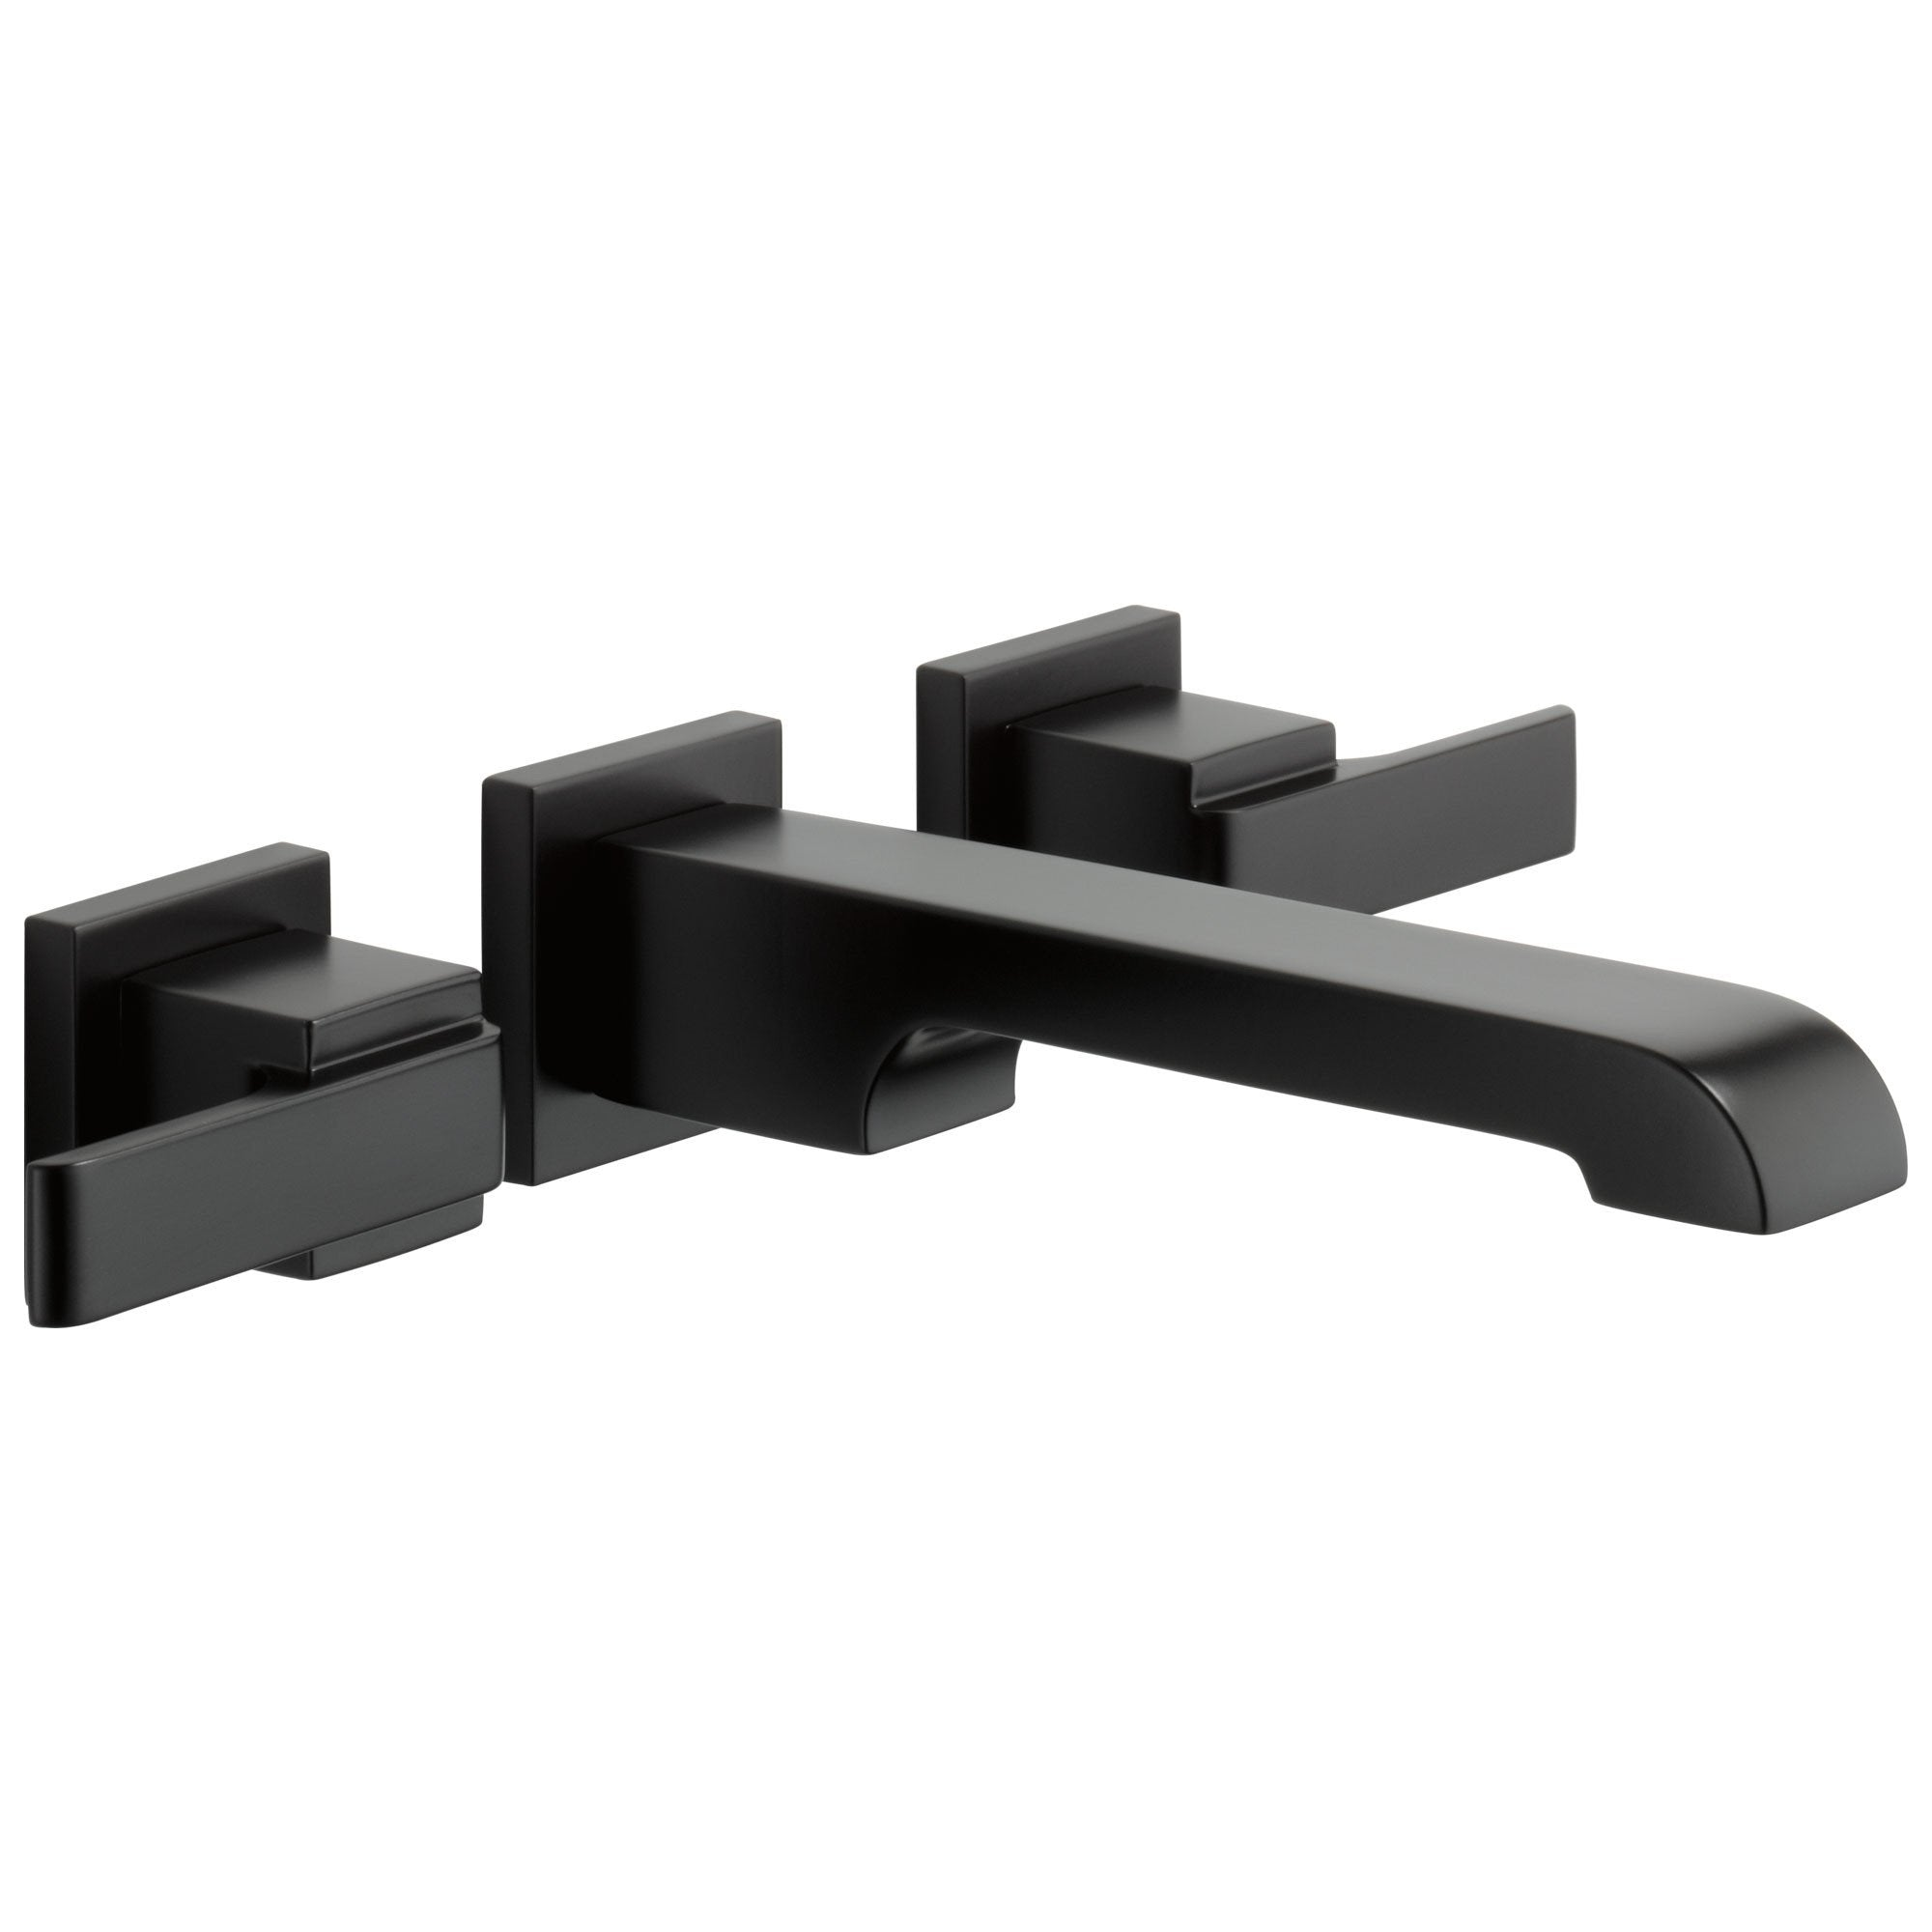 Delta Ara Collection Matte Black Finish Modern Two Handle Wall Mounted Bathroom Lavatory Sink Faucet Trim Kit (Requires Rough-in Valve) DT3567LFBLWL